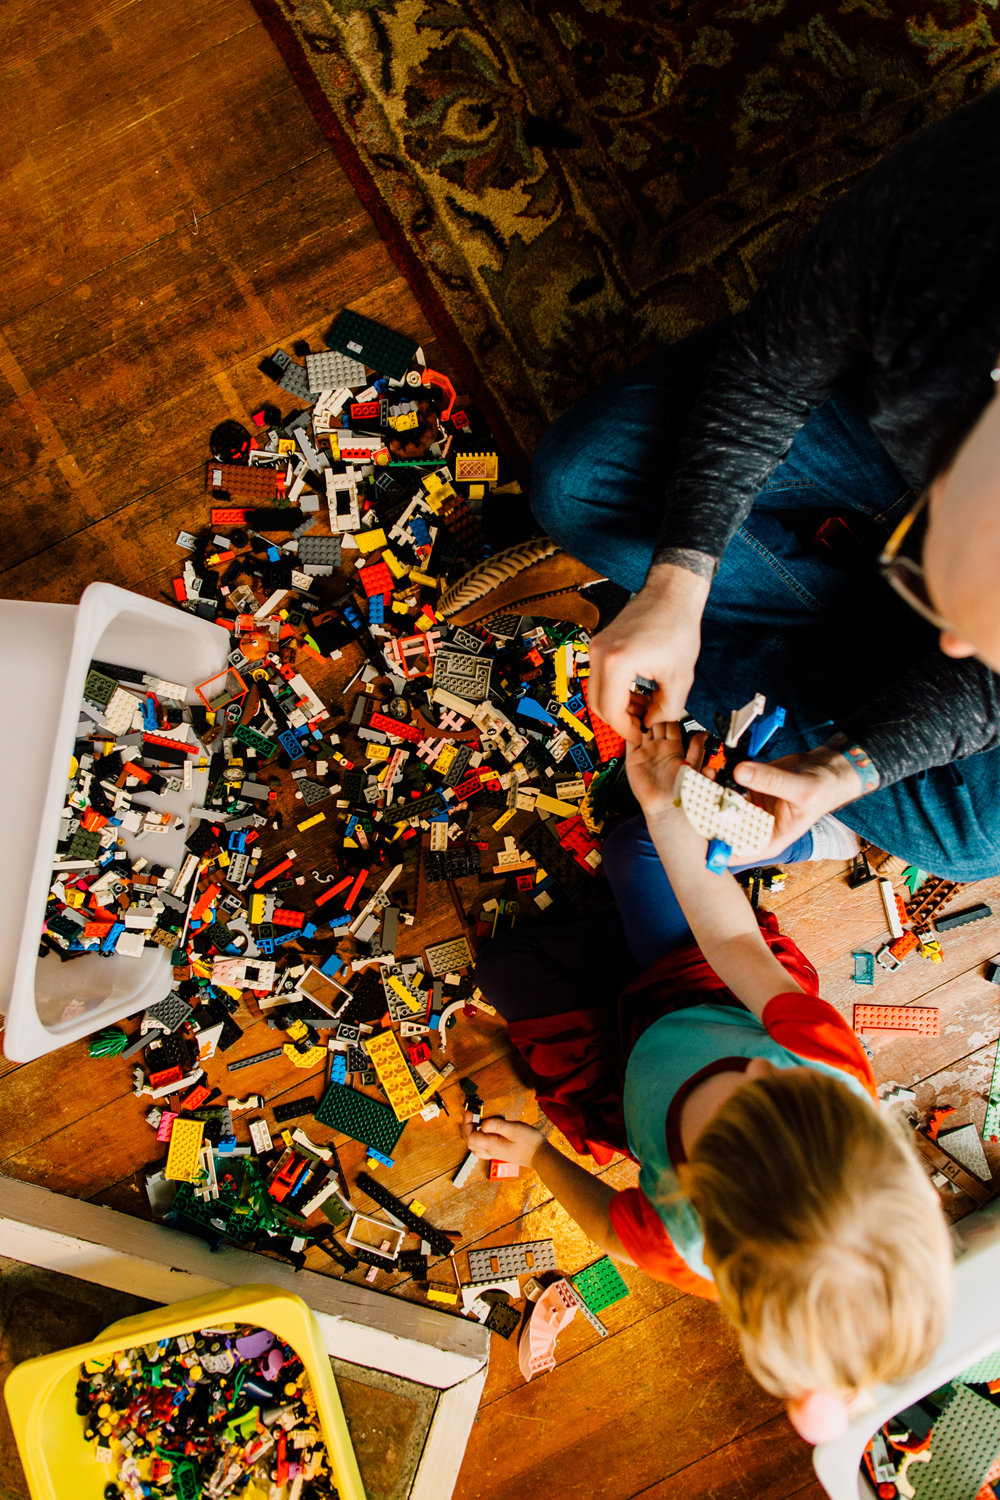 017-bellingham-lifestyle-photographer-katheryn-moran-lego-building-in-home-session.jpg